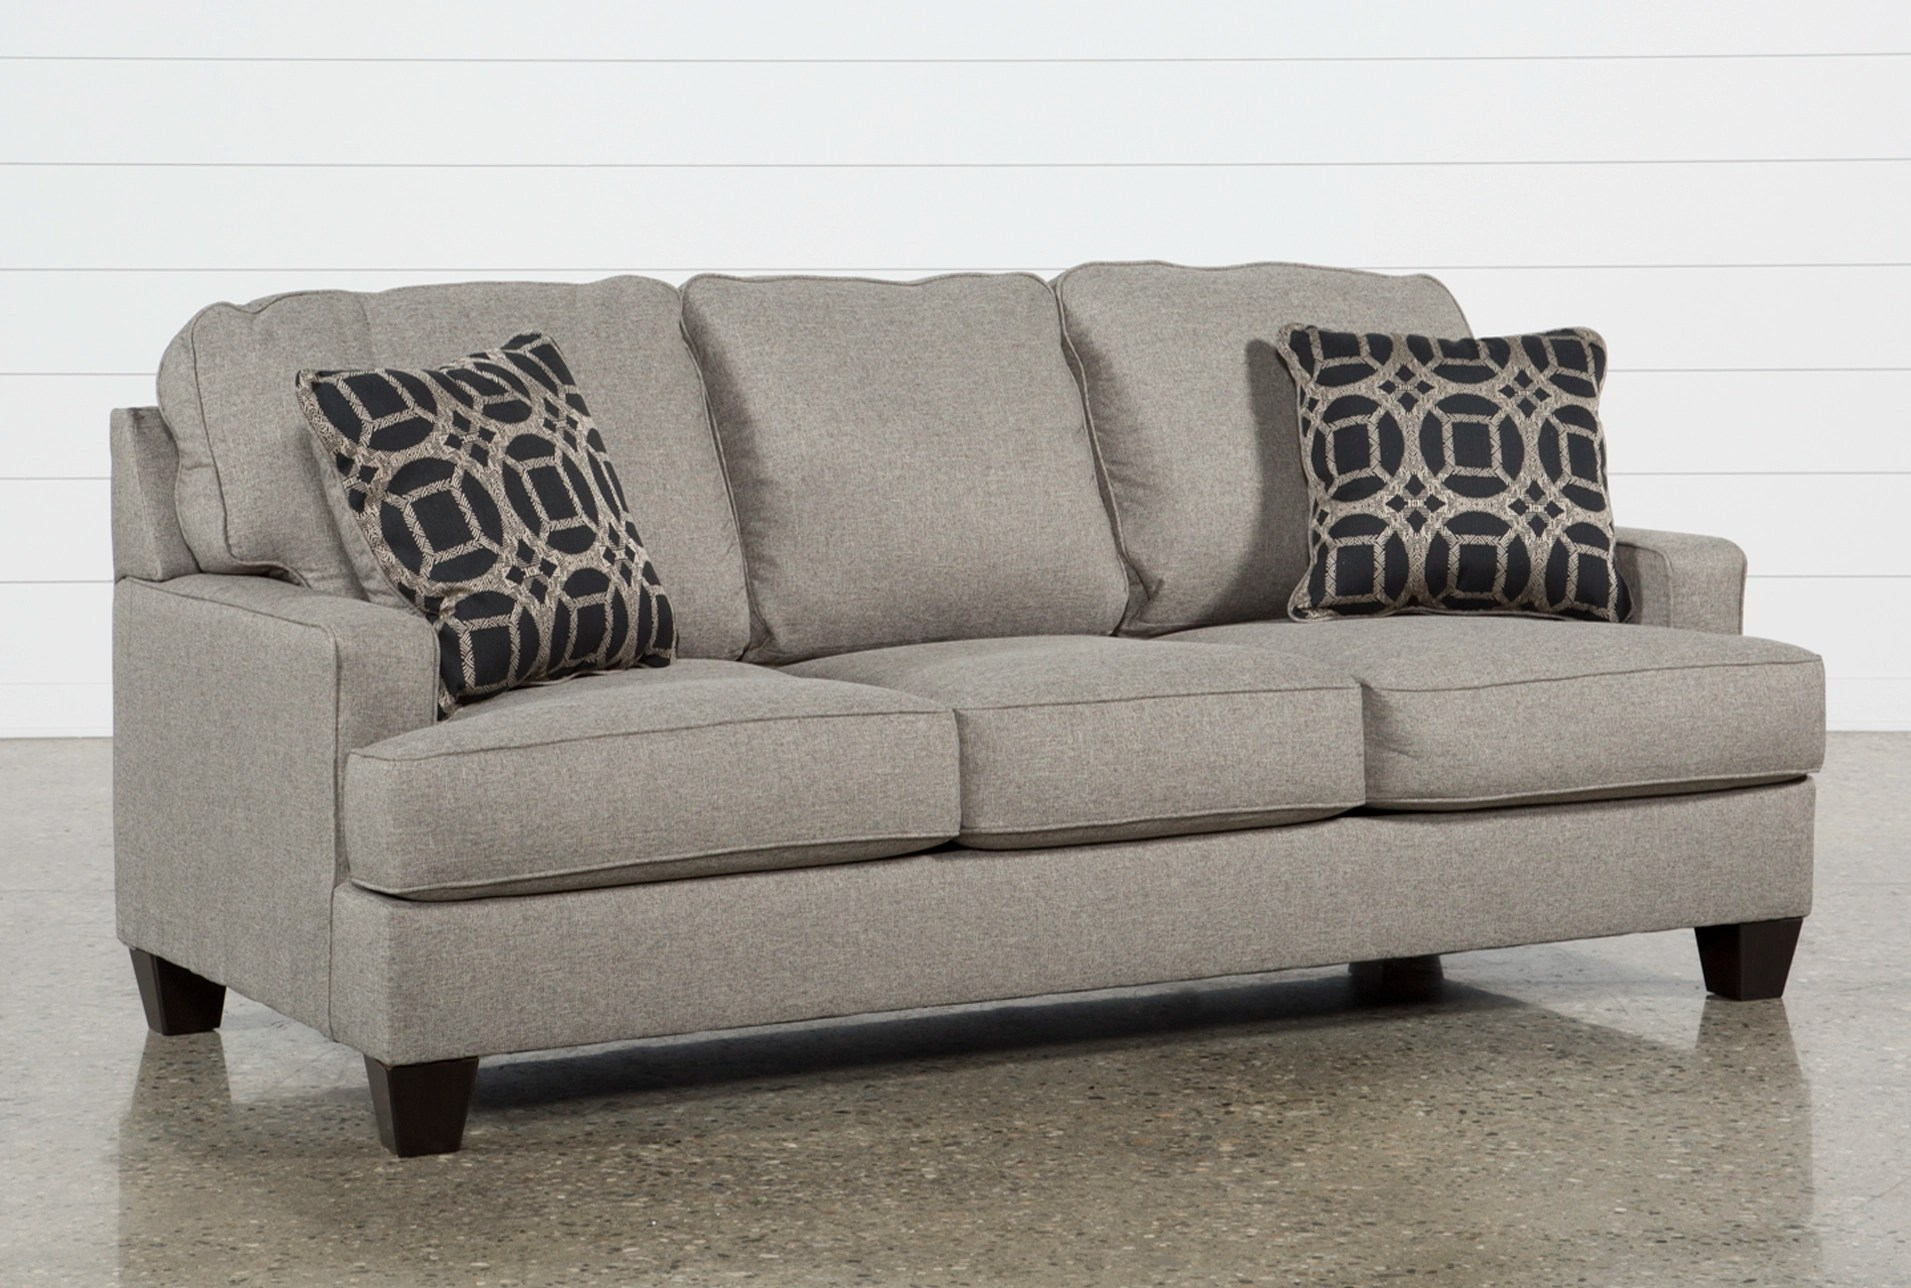 navasota queen sofa sleeper reviews leather restoration hardware signature design by ashley banner